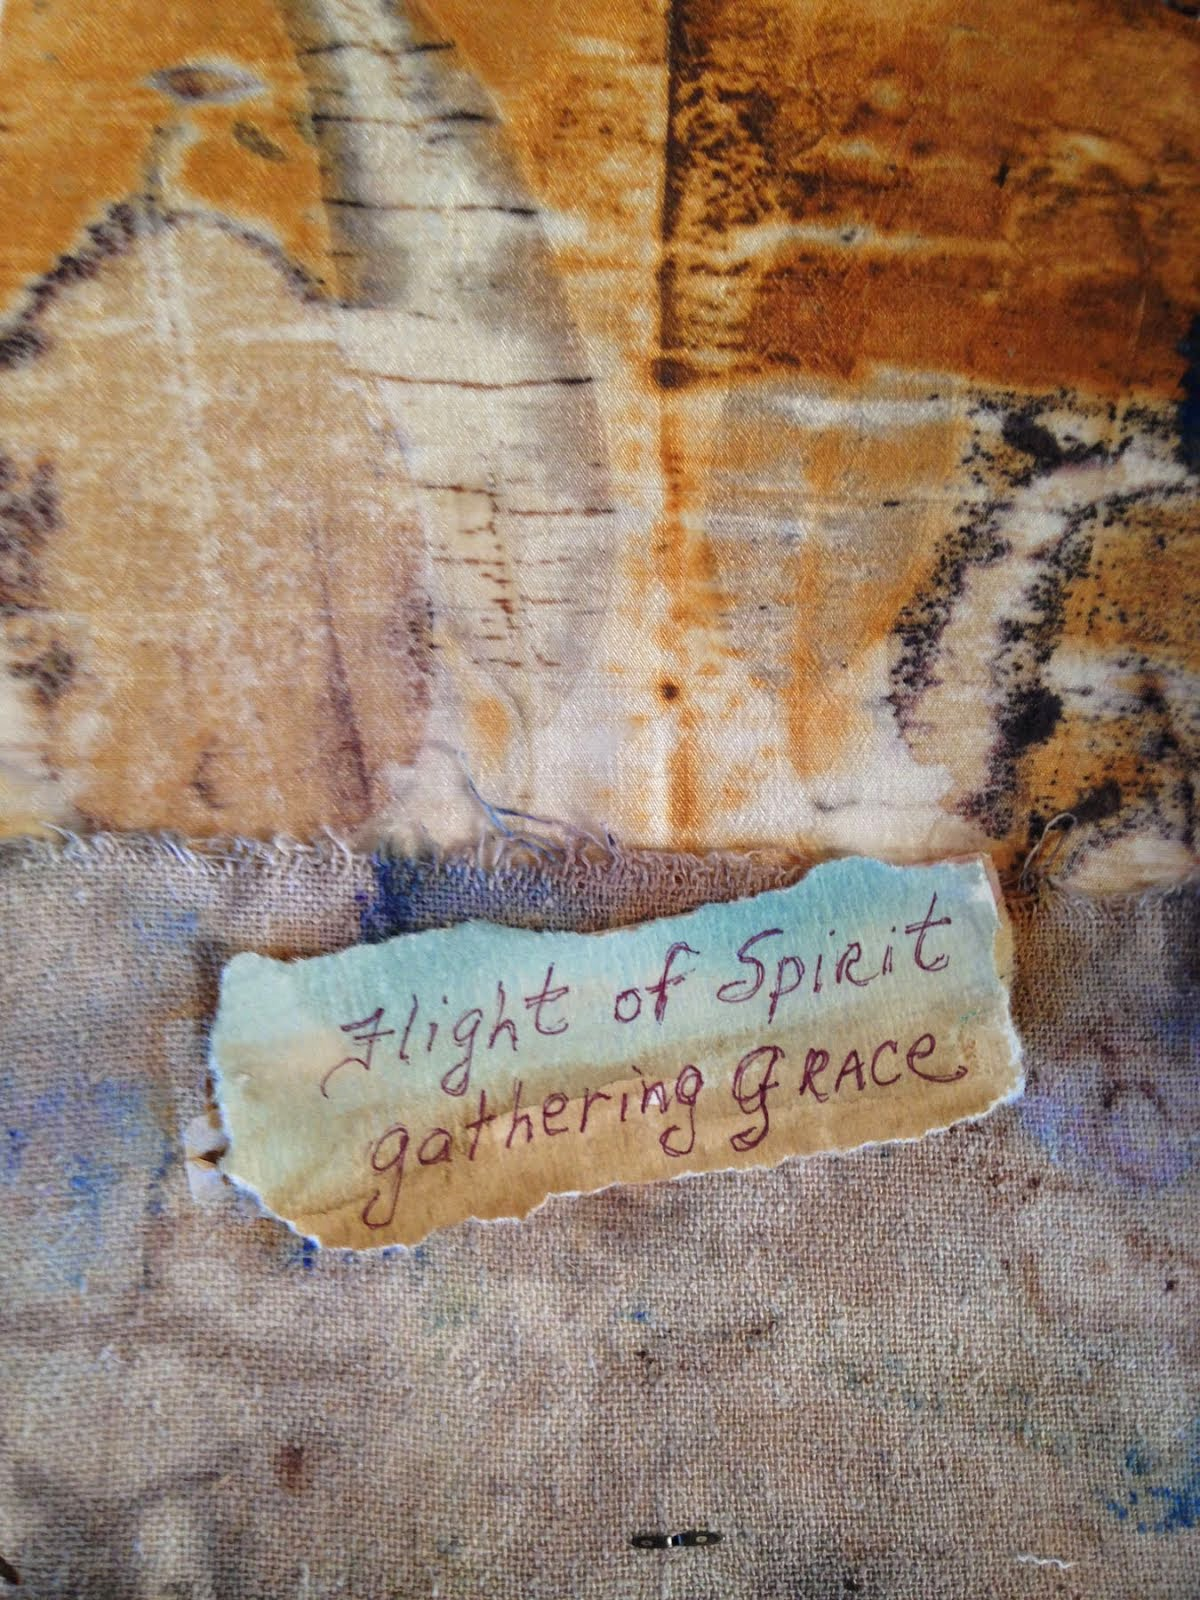 Flight of Spirit Gathering Garce